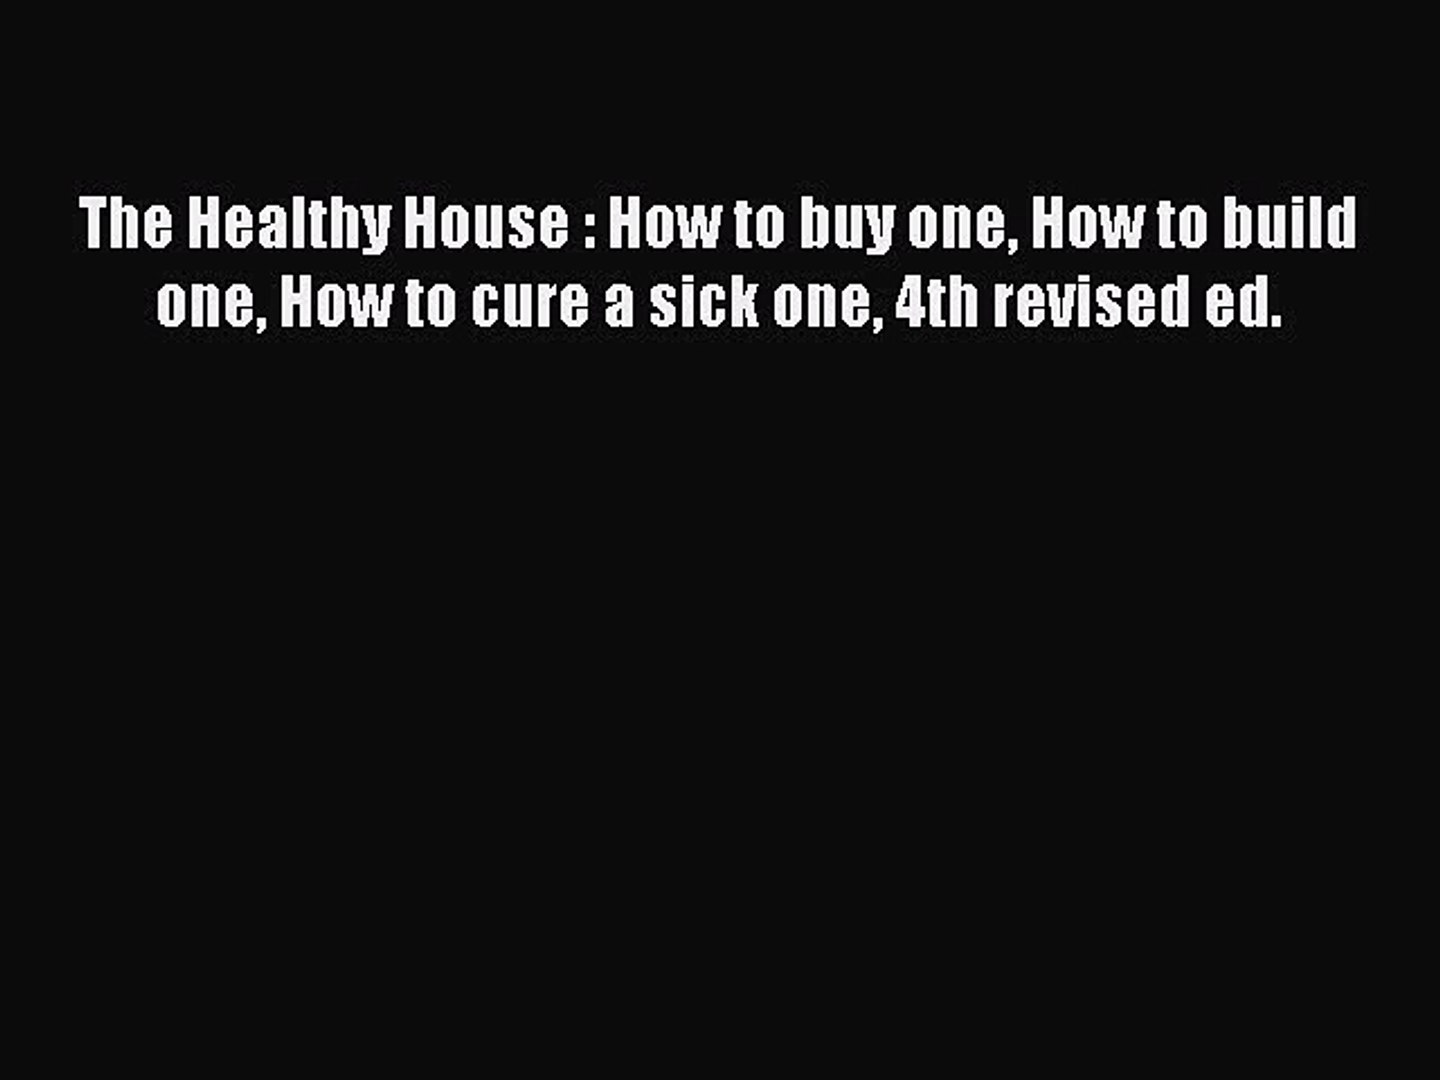 FREEDOWNLOAD The Healthy House : How to buy one How to build one How to cure a sick one 4th